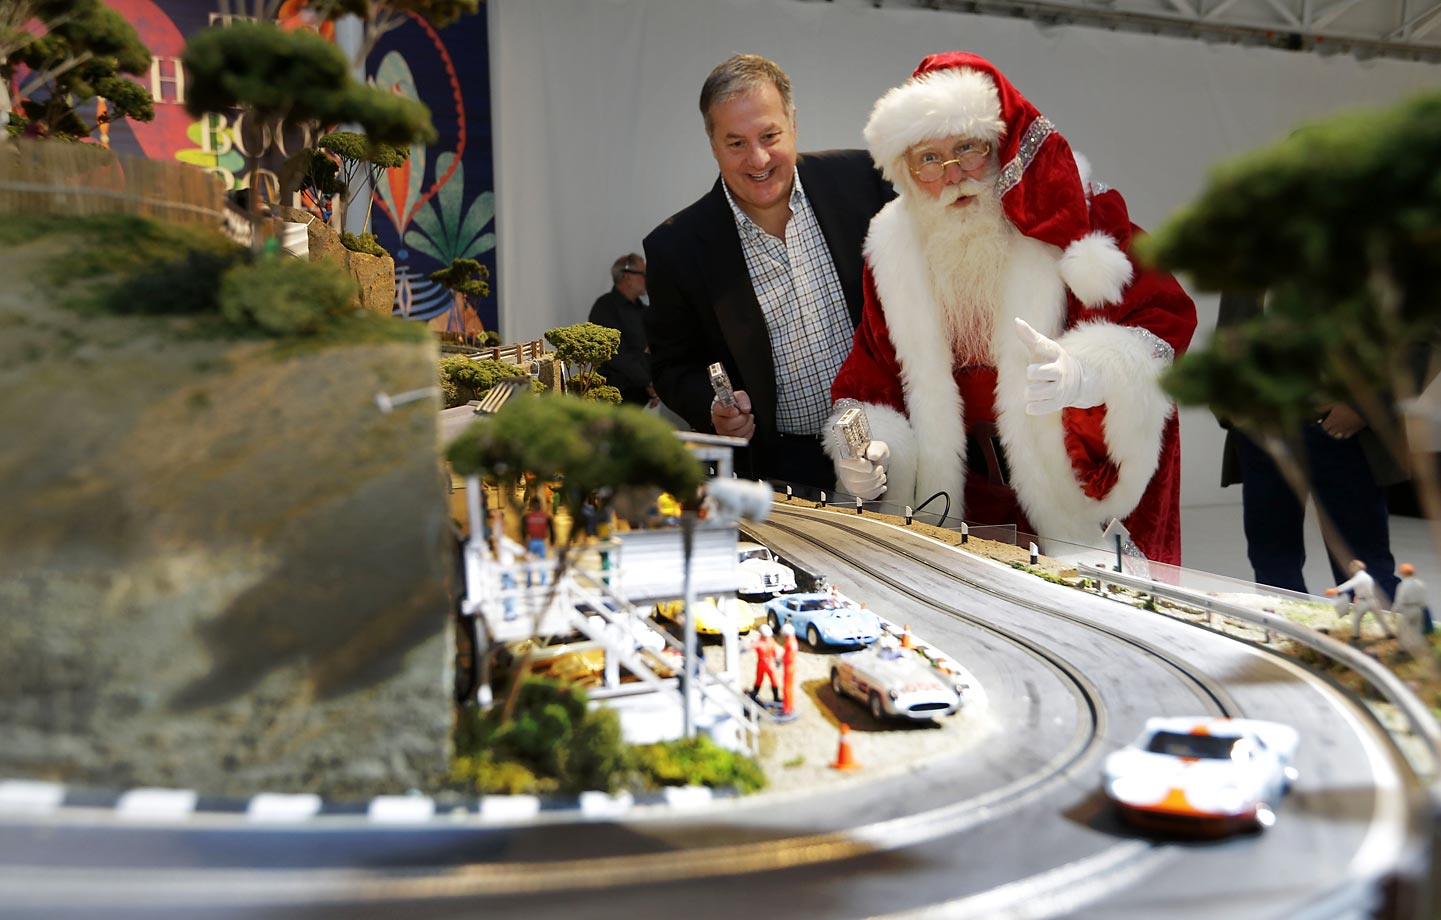 Brady Smith, as Santa Claus, and David Beattie check out the Slot Mods USA Ultimate Slot Car Raceway during the unveiling of the Neiman Marcus Christmas Book. The 1:32 scale model race track costs $300,000.